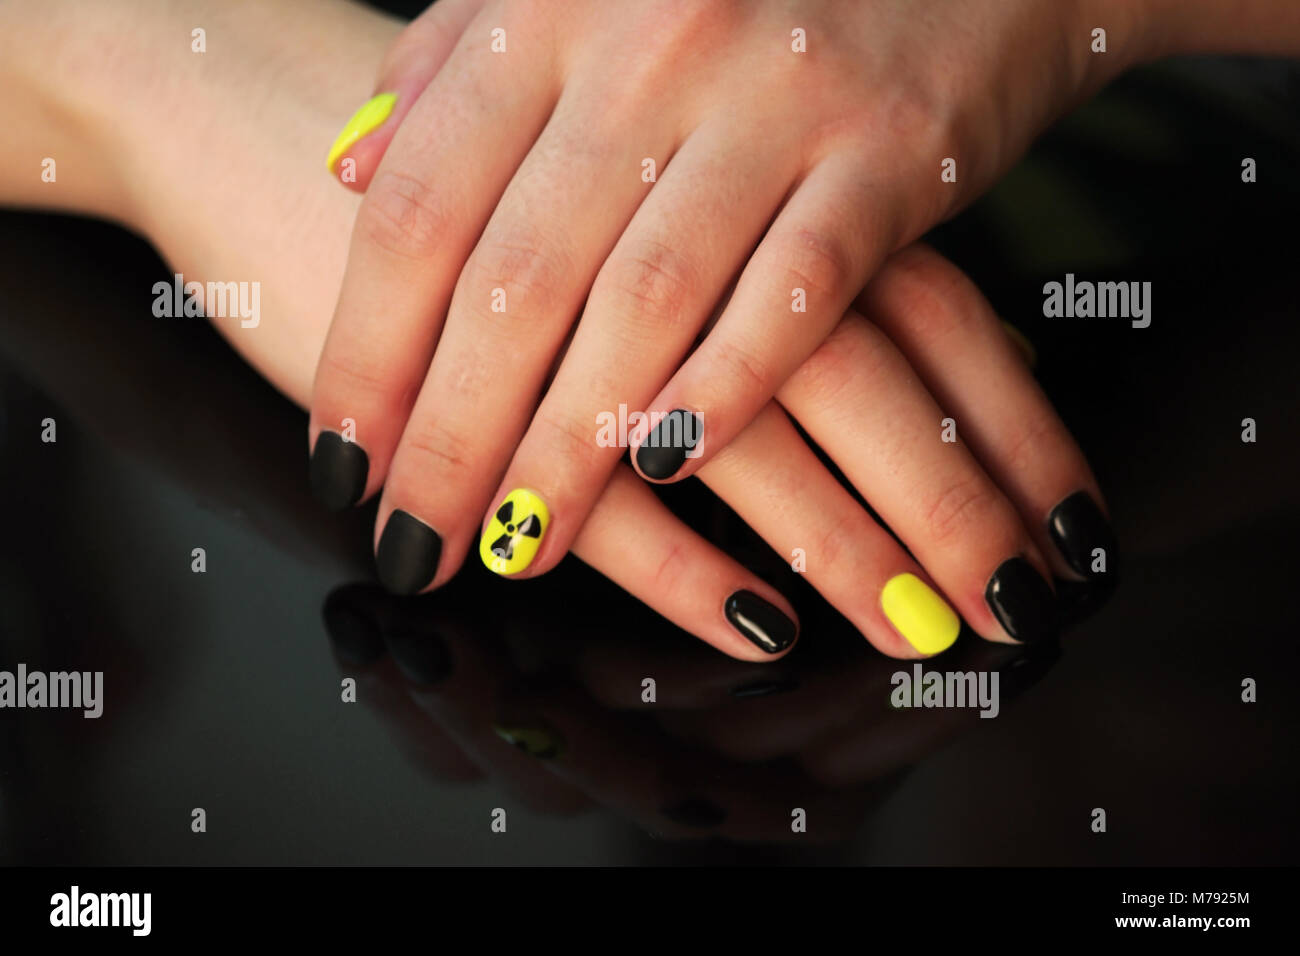 Neon Yellow Nails Stock Photos & Neon Yellow Nails Stock Images - Alamy